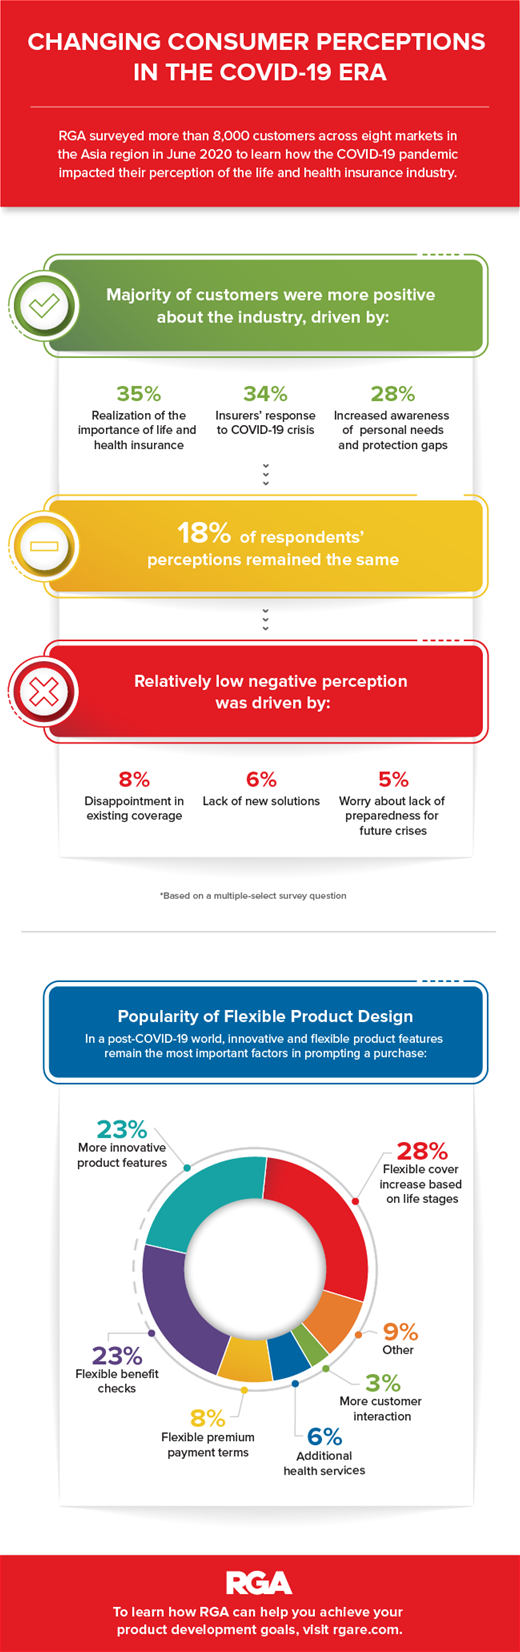 Asia Changing Consumer Perception Covid19_Full Infographic_Final-06